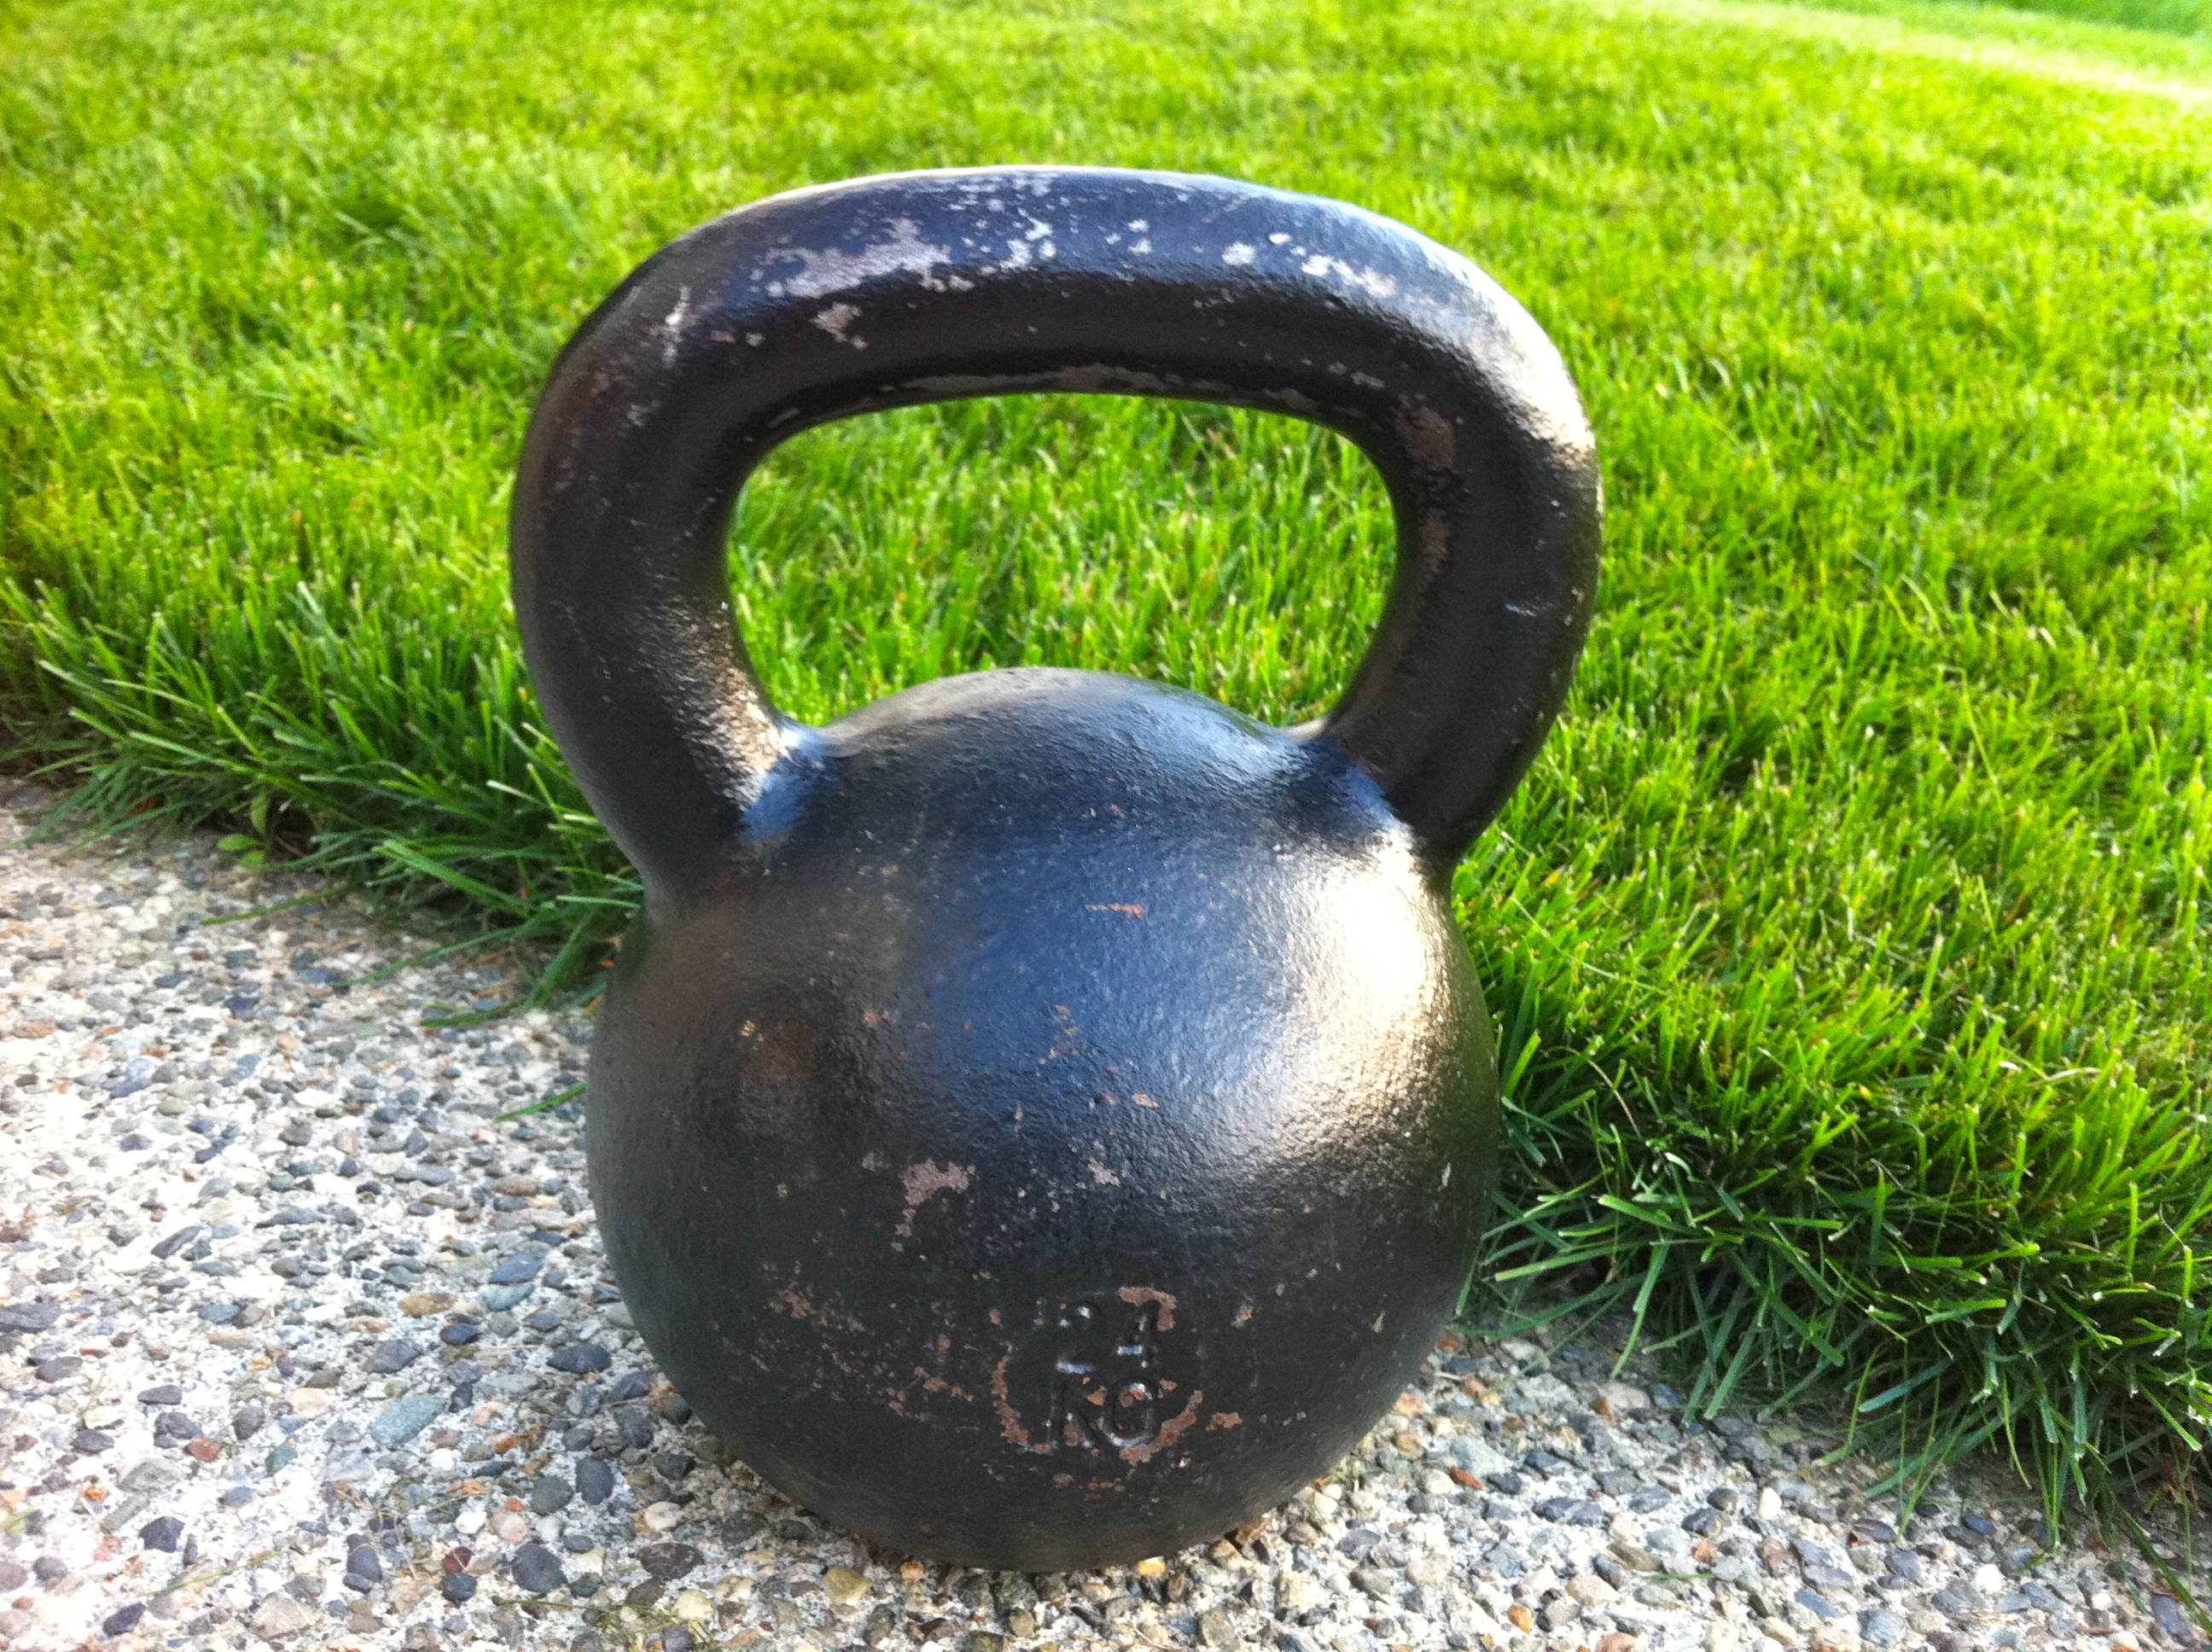 Why I'll Never Use P90X - Practical Stewardship